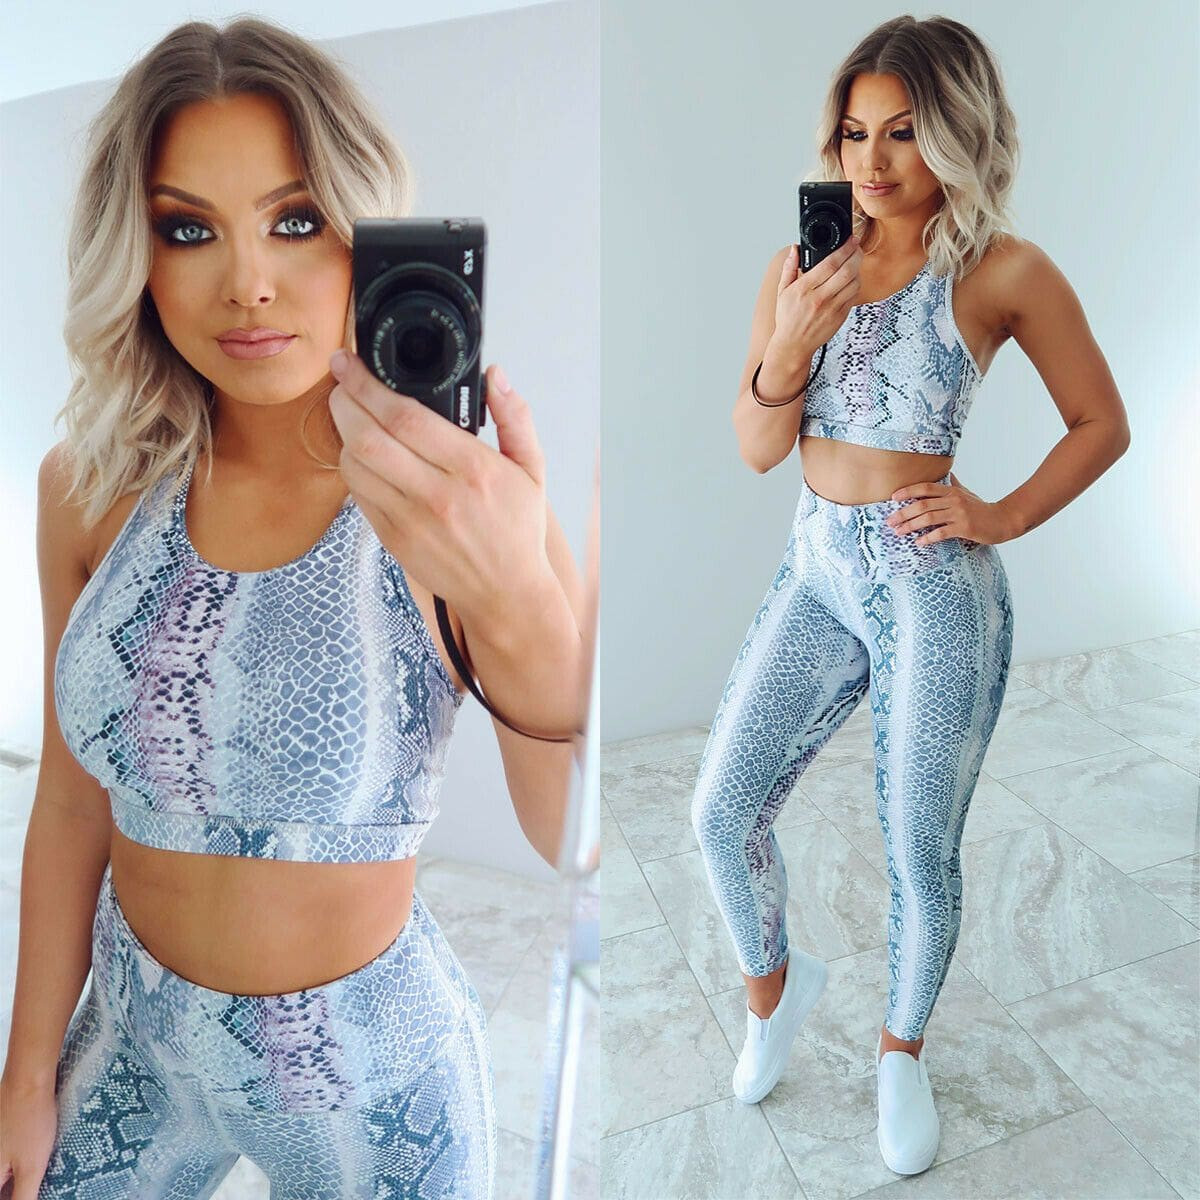 The Best 2pcs Women Outfits Set Running Vest Bra + High Waist Pants Gym Workout Casual Fitness Clothes Tights Sport Wear Tracksuit Online - Source Silk